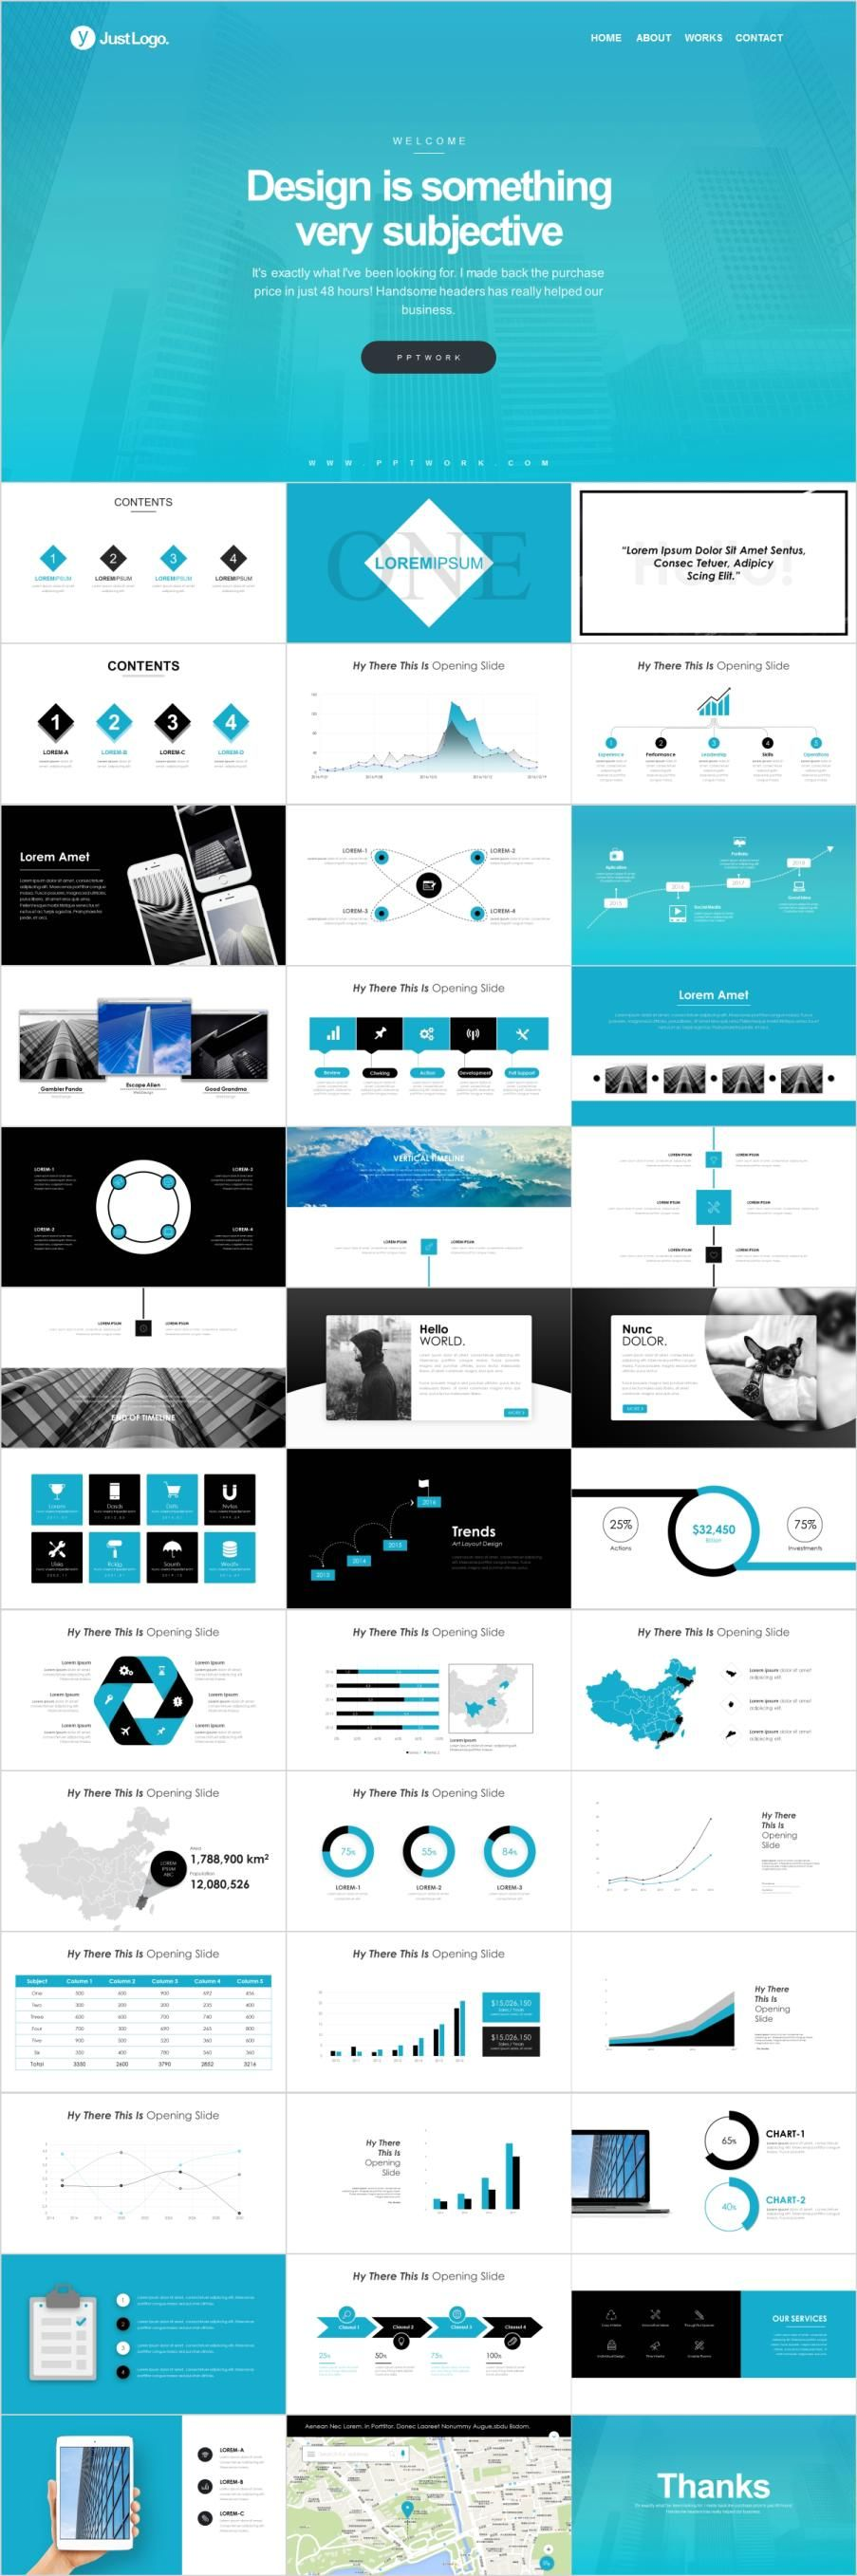 Blue Company Profile Powerpoint Template Powerpoint Templates Business Design Business Powerpoint Presentation